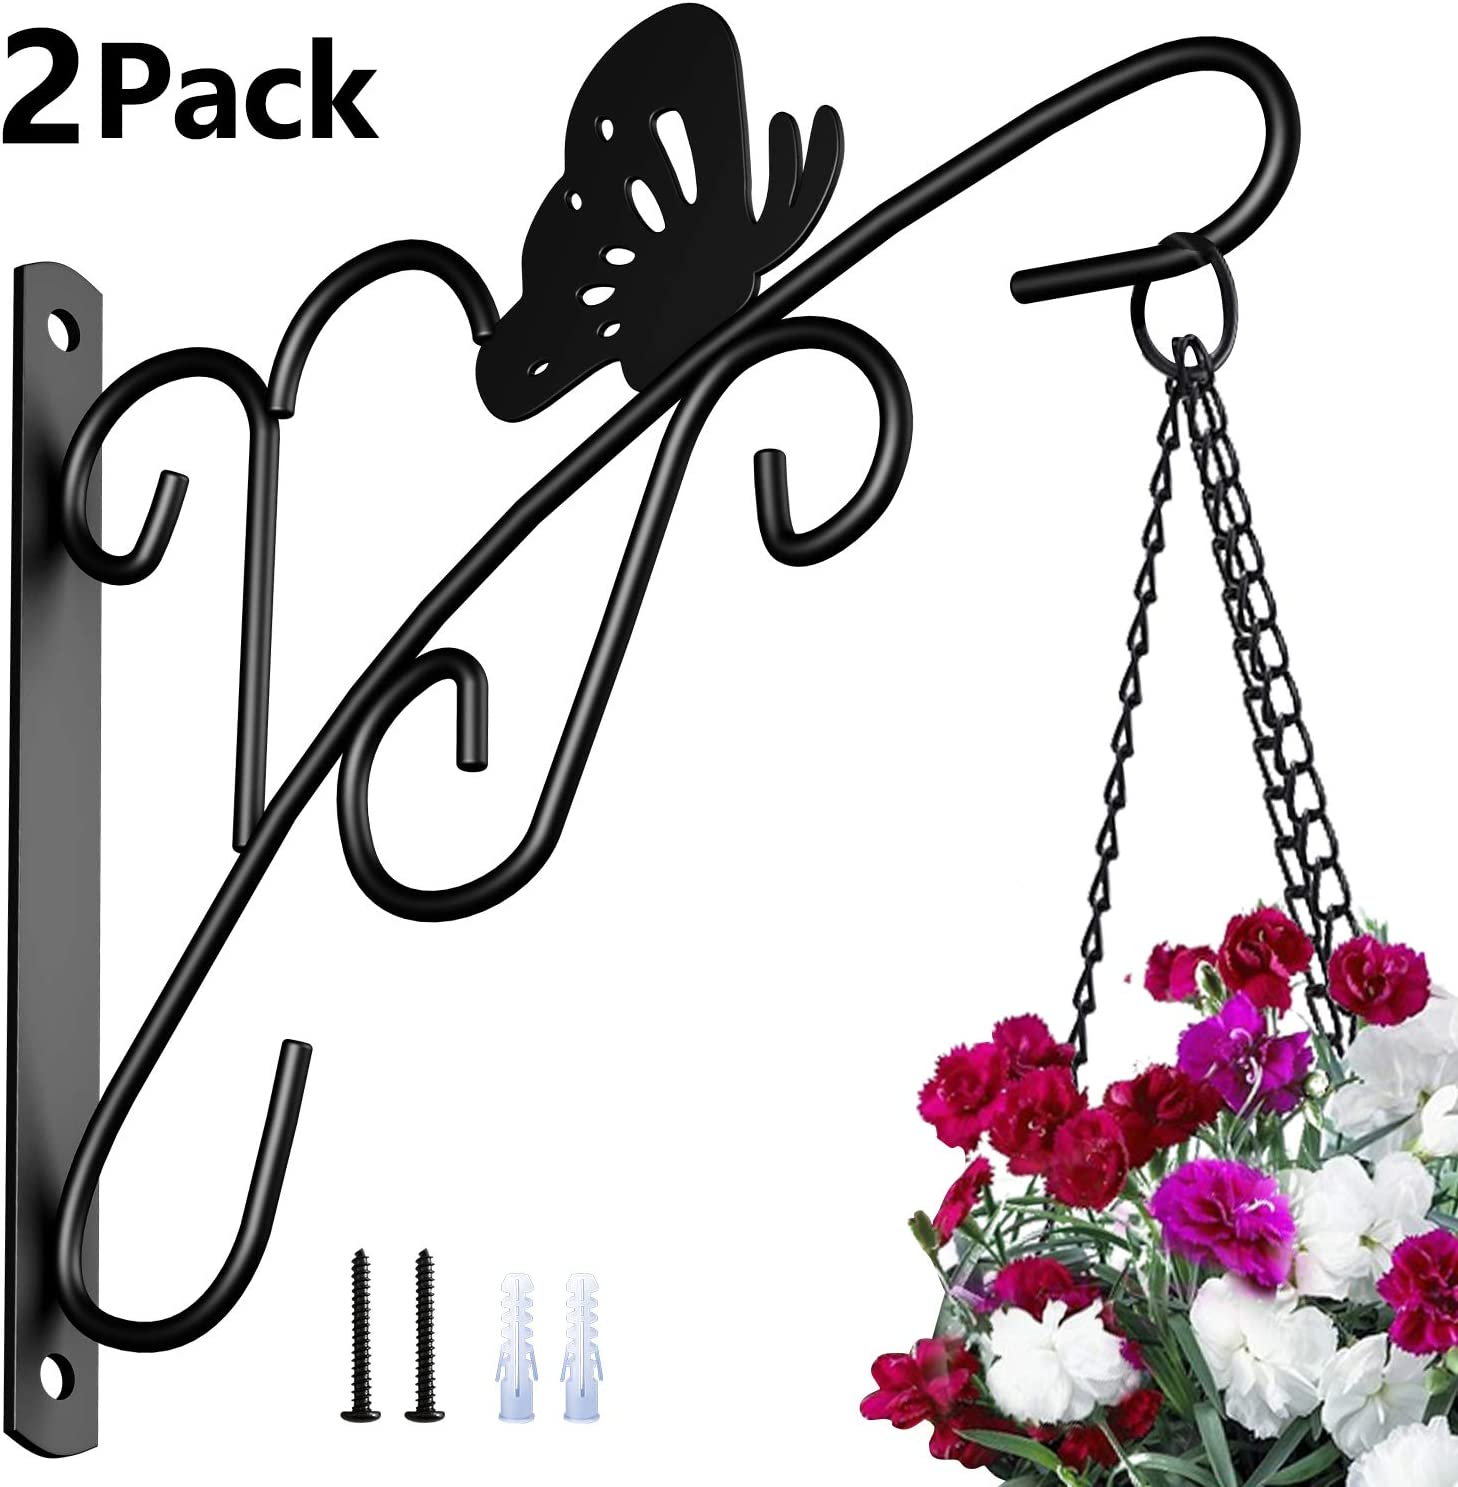 Amagabeli 2 Pack Hanging Plants Bracket 11'' Wall Planter Hooks Hangers Flower Pot Bird Feeder Wind Chimes Lanterns Patio Lawn Garden for Outdoor Indoor Fence Screw Mount against Door Arm Hardware